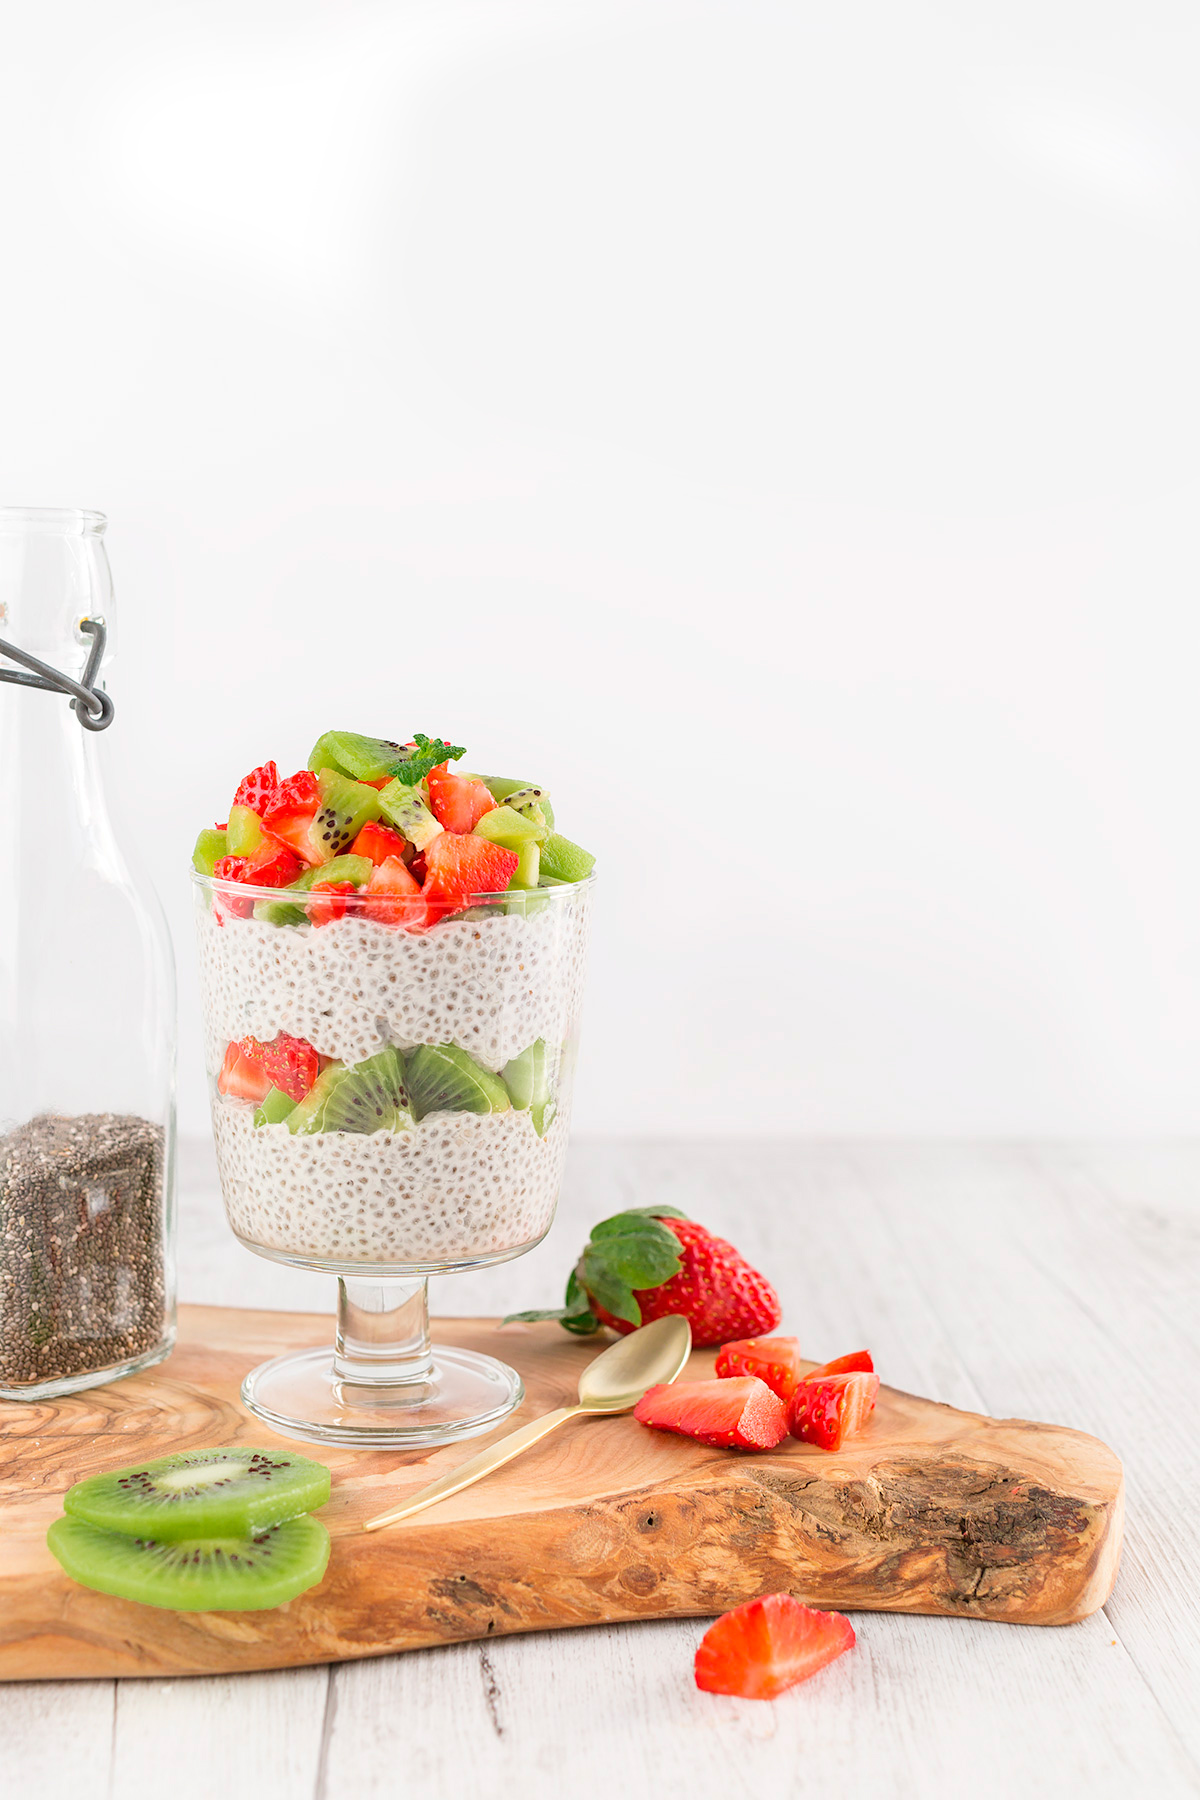 vegan simple CHIA SEED PUDDING basic recipe with strawberry CHIA PUDDING ricetta base BUDINO di SEMI di CHIA #vegan senza glutine alle fragole